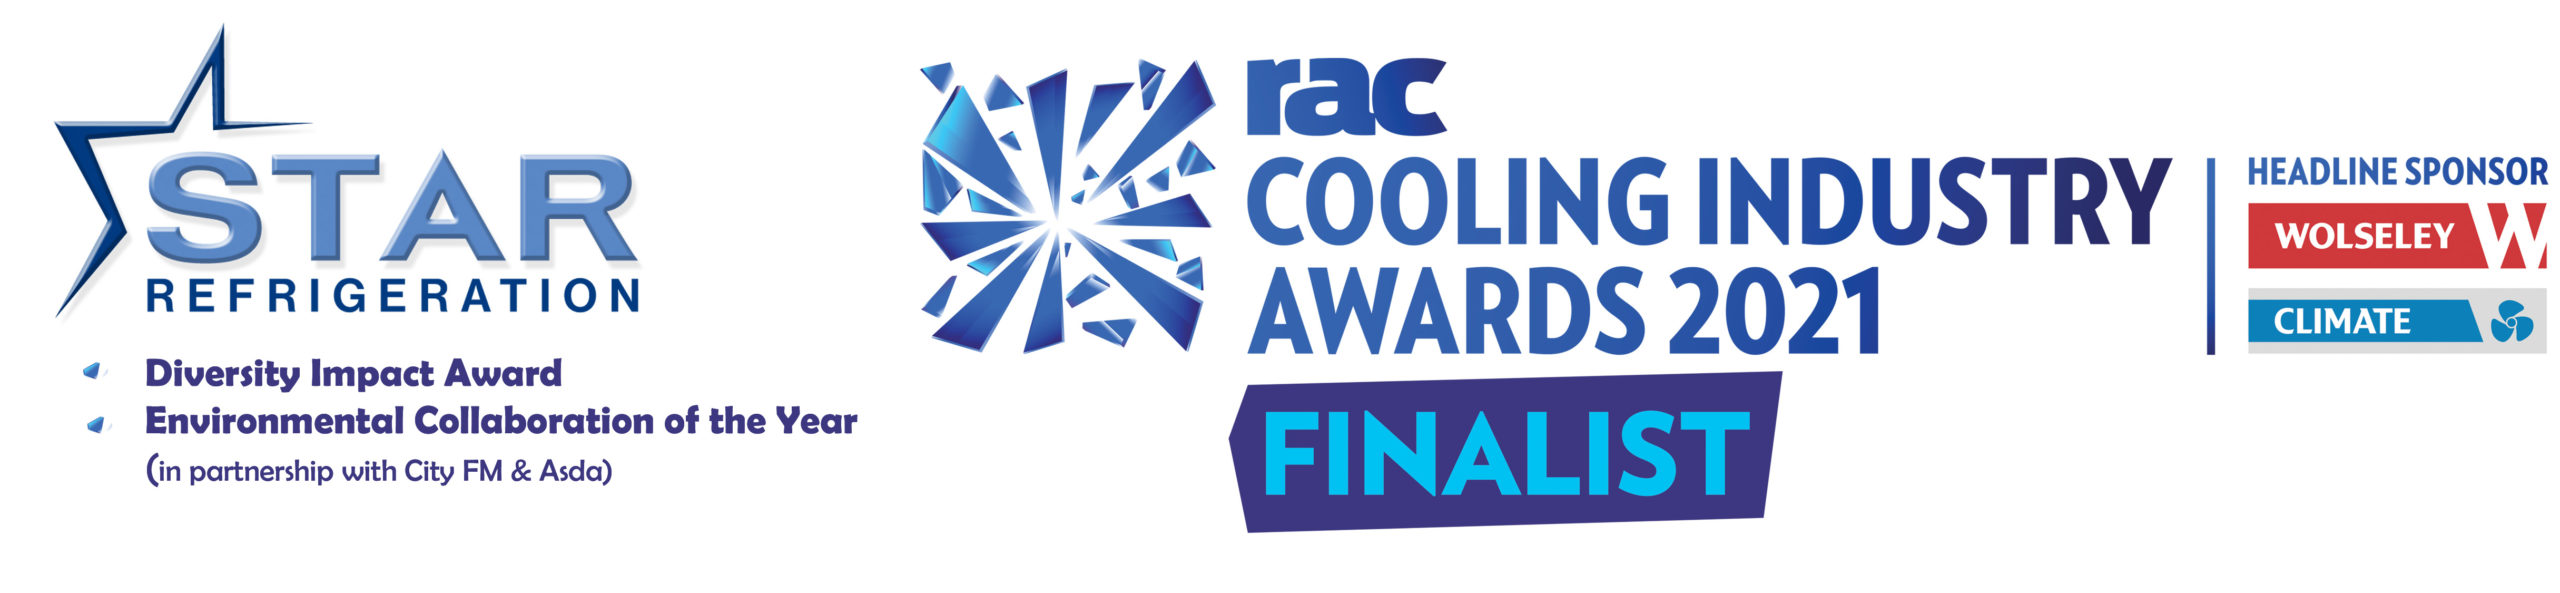 Star Refrigeration has been shortlisted for Diversity Impact and Environmental Collaboration at the RAC Cooling Awards